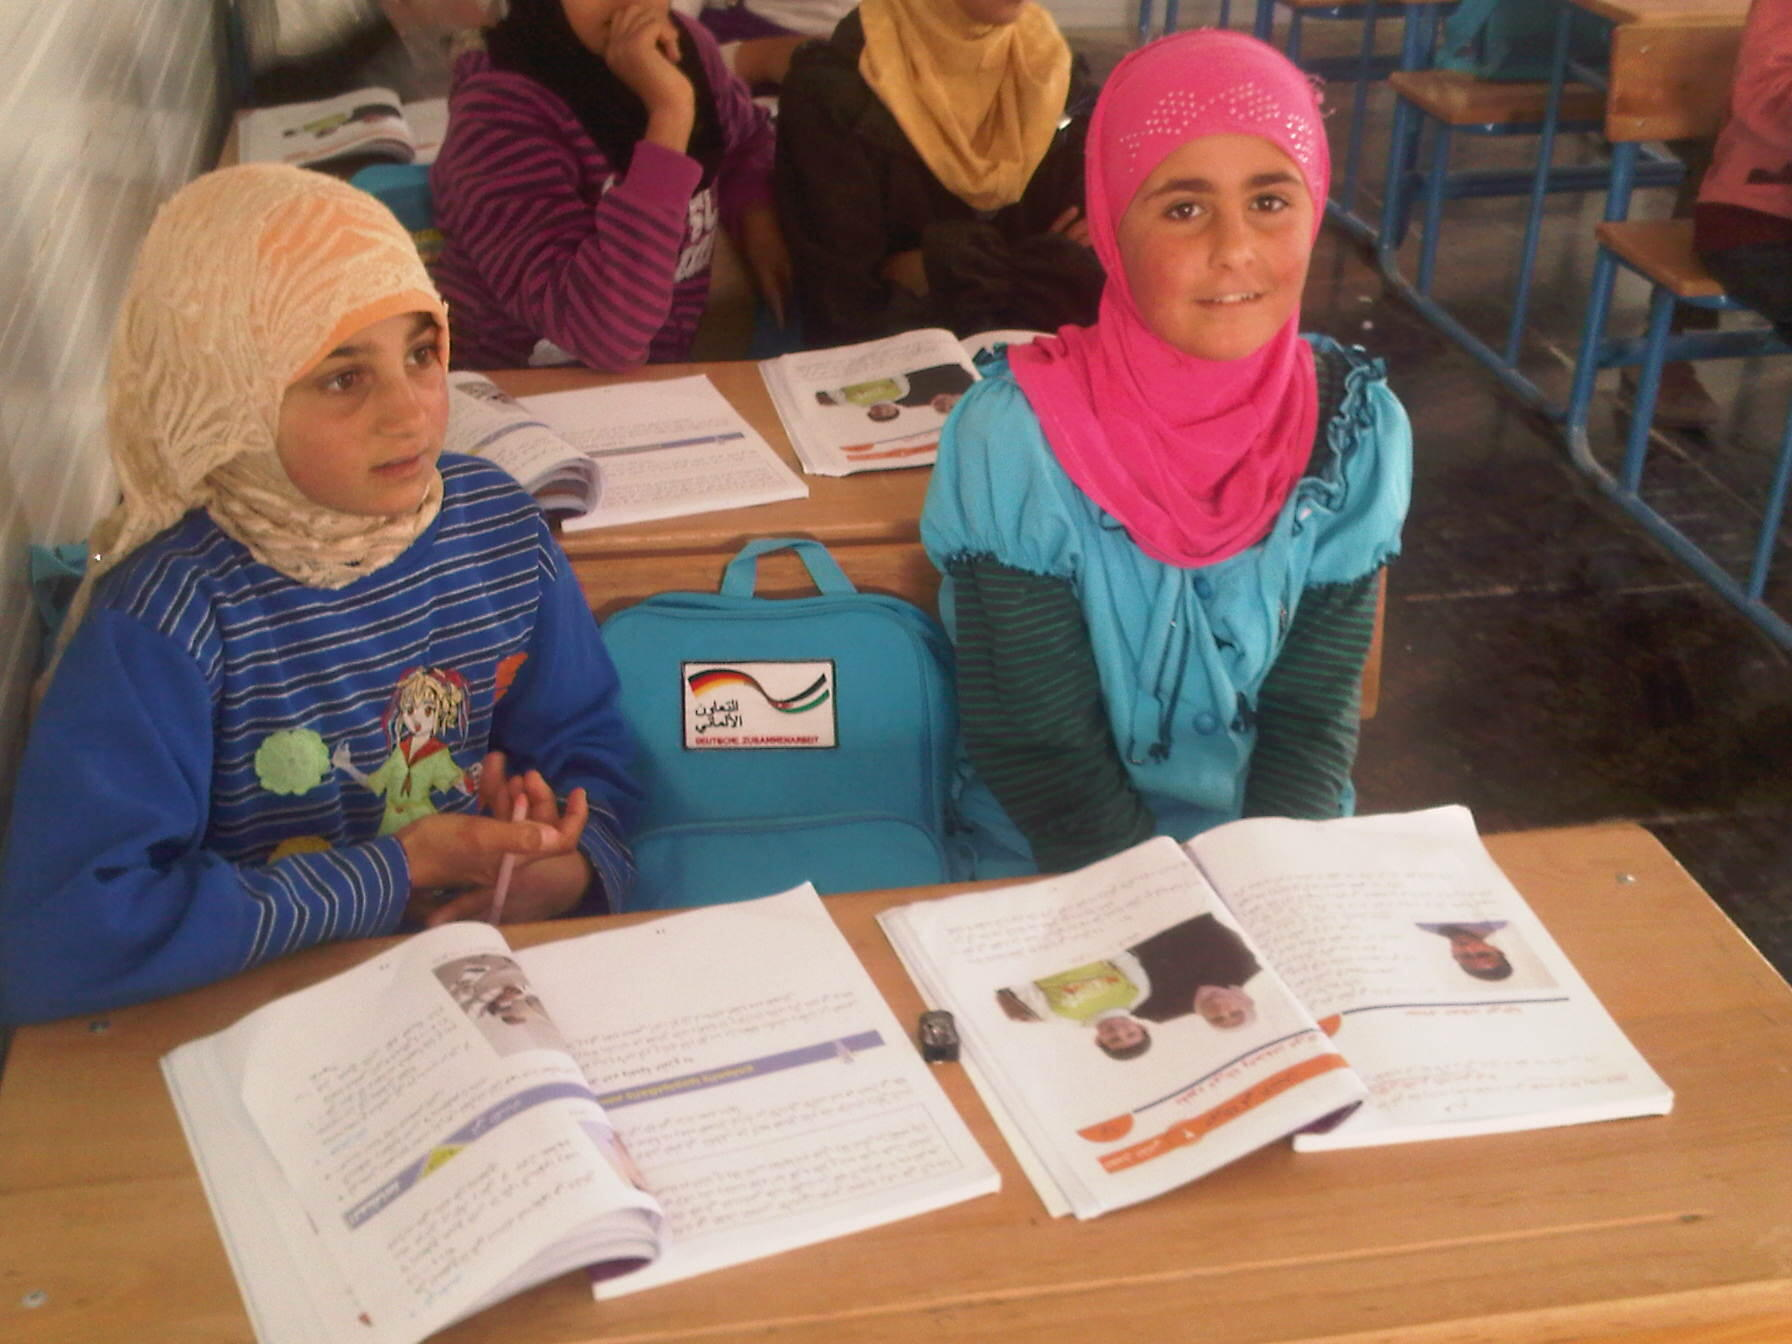 'I love school &want to be a doctor to help my people', 11yr old #Syria girl living in #Zaatari camp #childrenofsyria http://t.co/aiagExrbF9